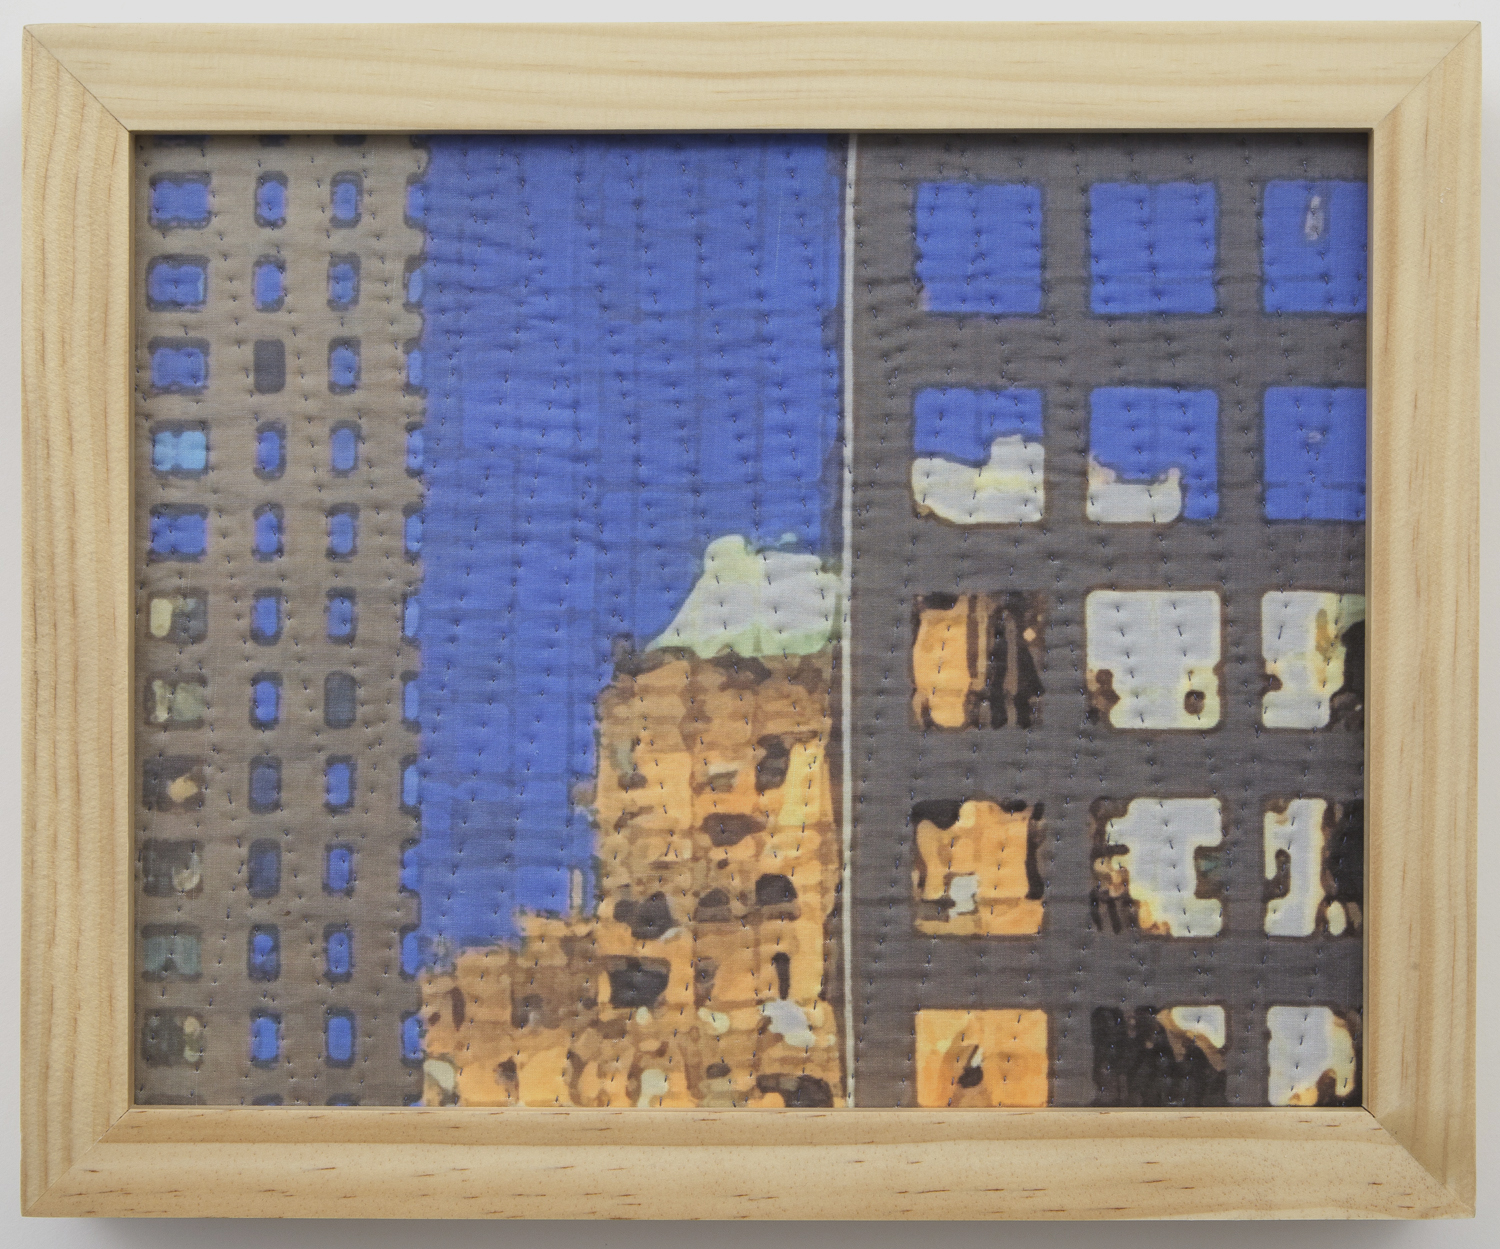 "500-14. study for new york windows 1341, 8""x10"", mixed media on silk, hand quilted, framed"